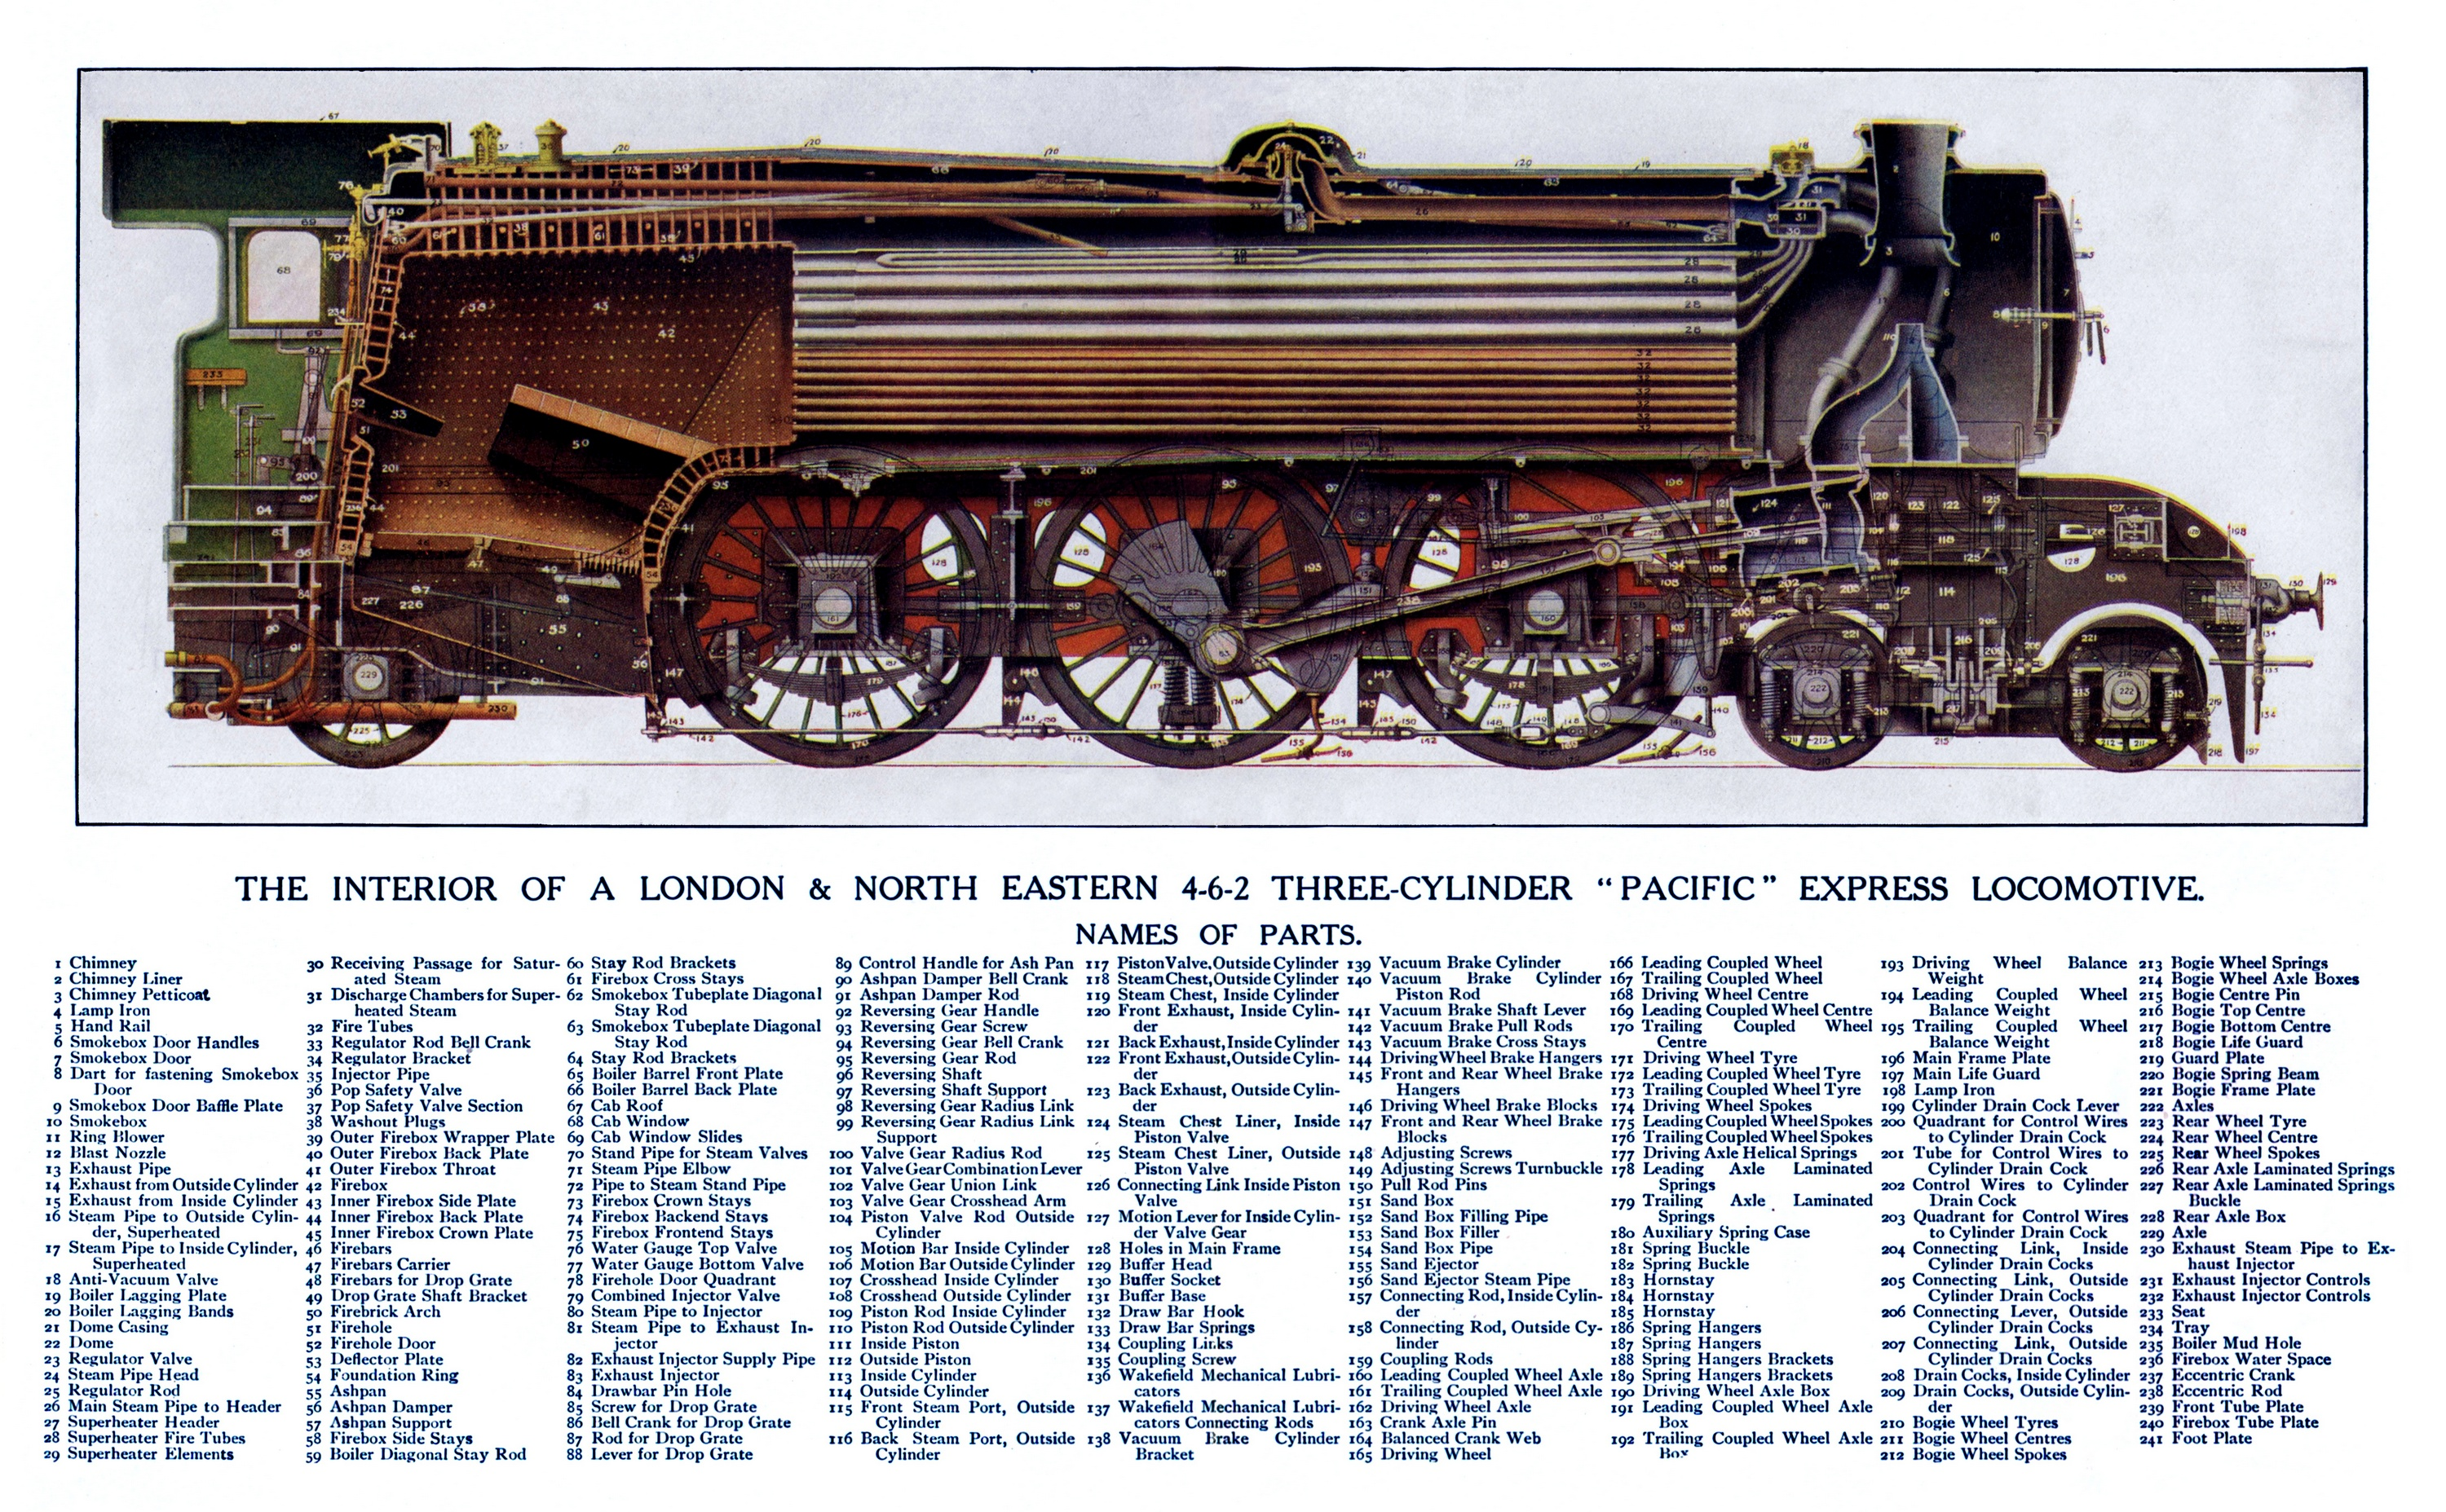 Flying Scotsman Gresley A1/A3 steam locomotive (1923-), LNER